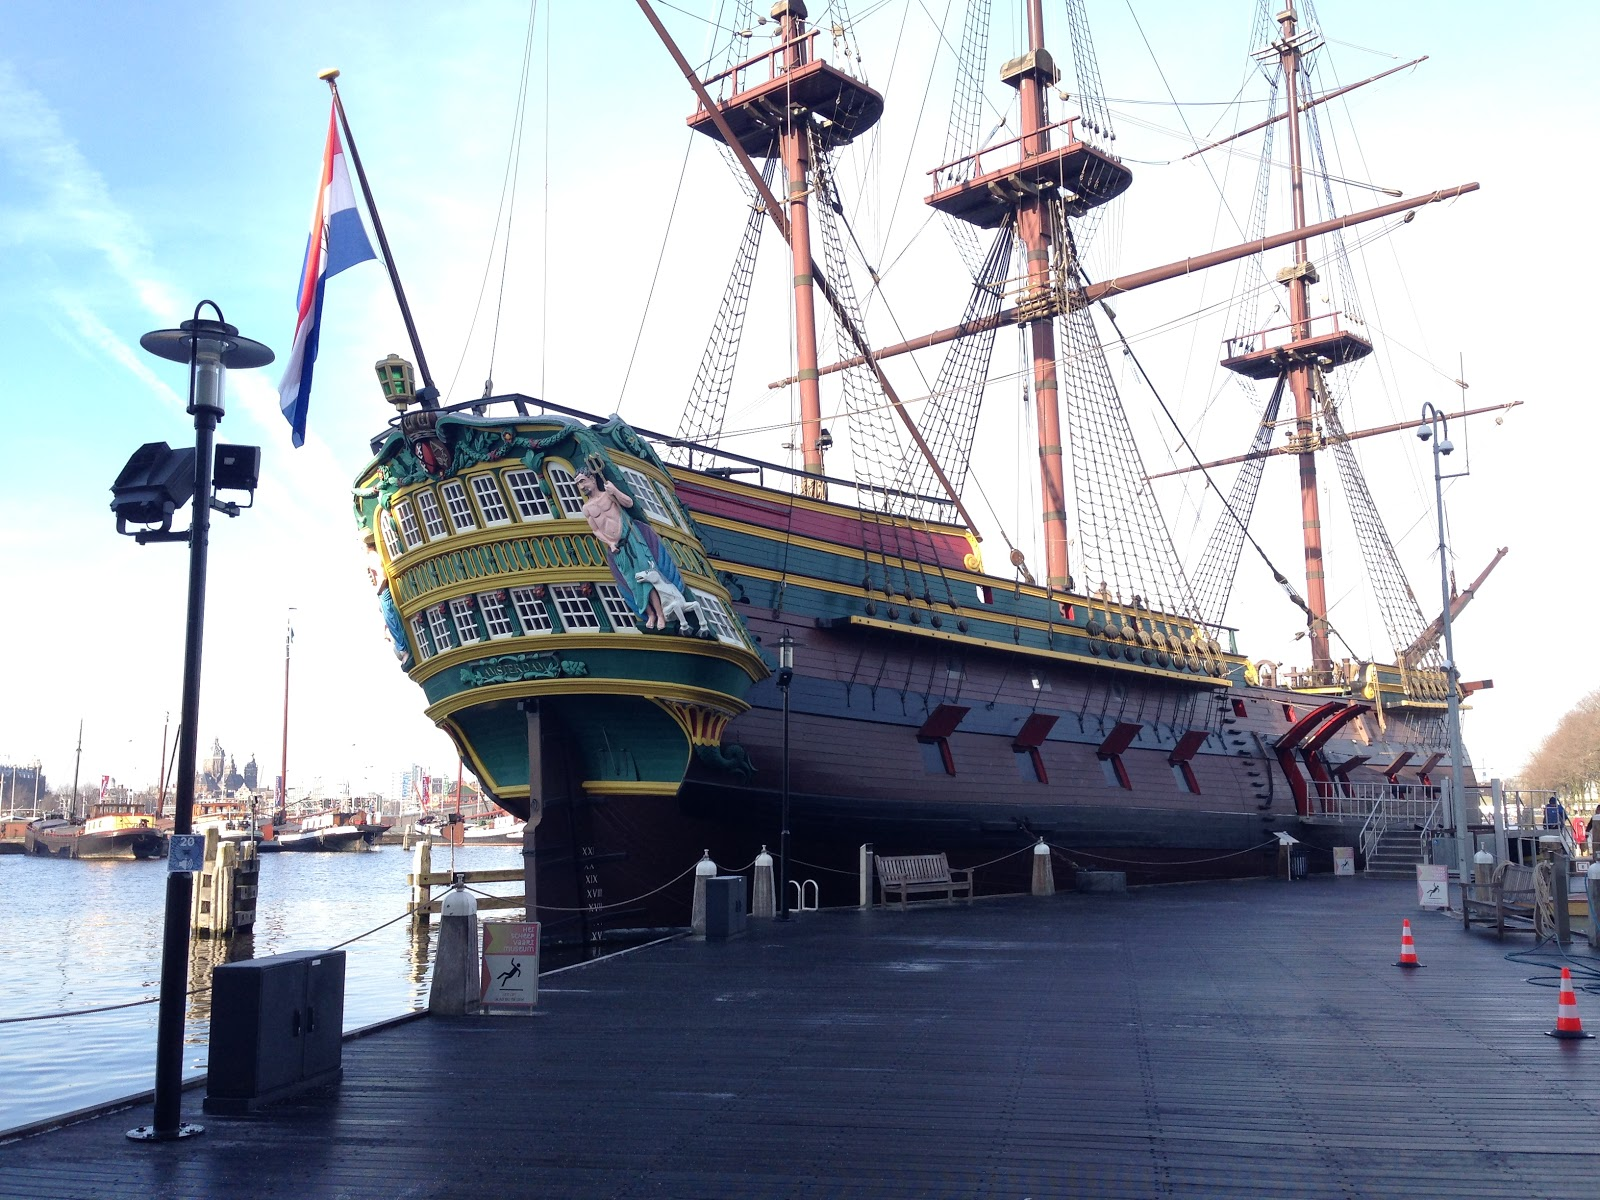 VOC Ship parked in the most unexplored landmarks of Amsterdam